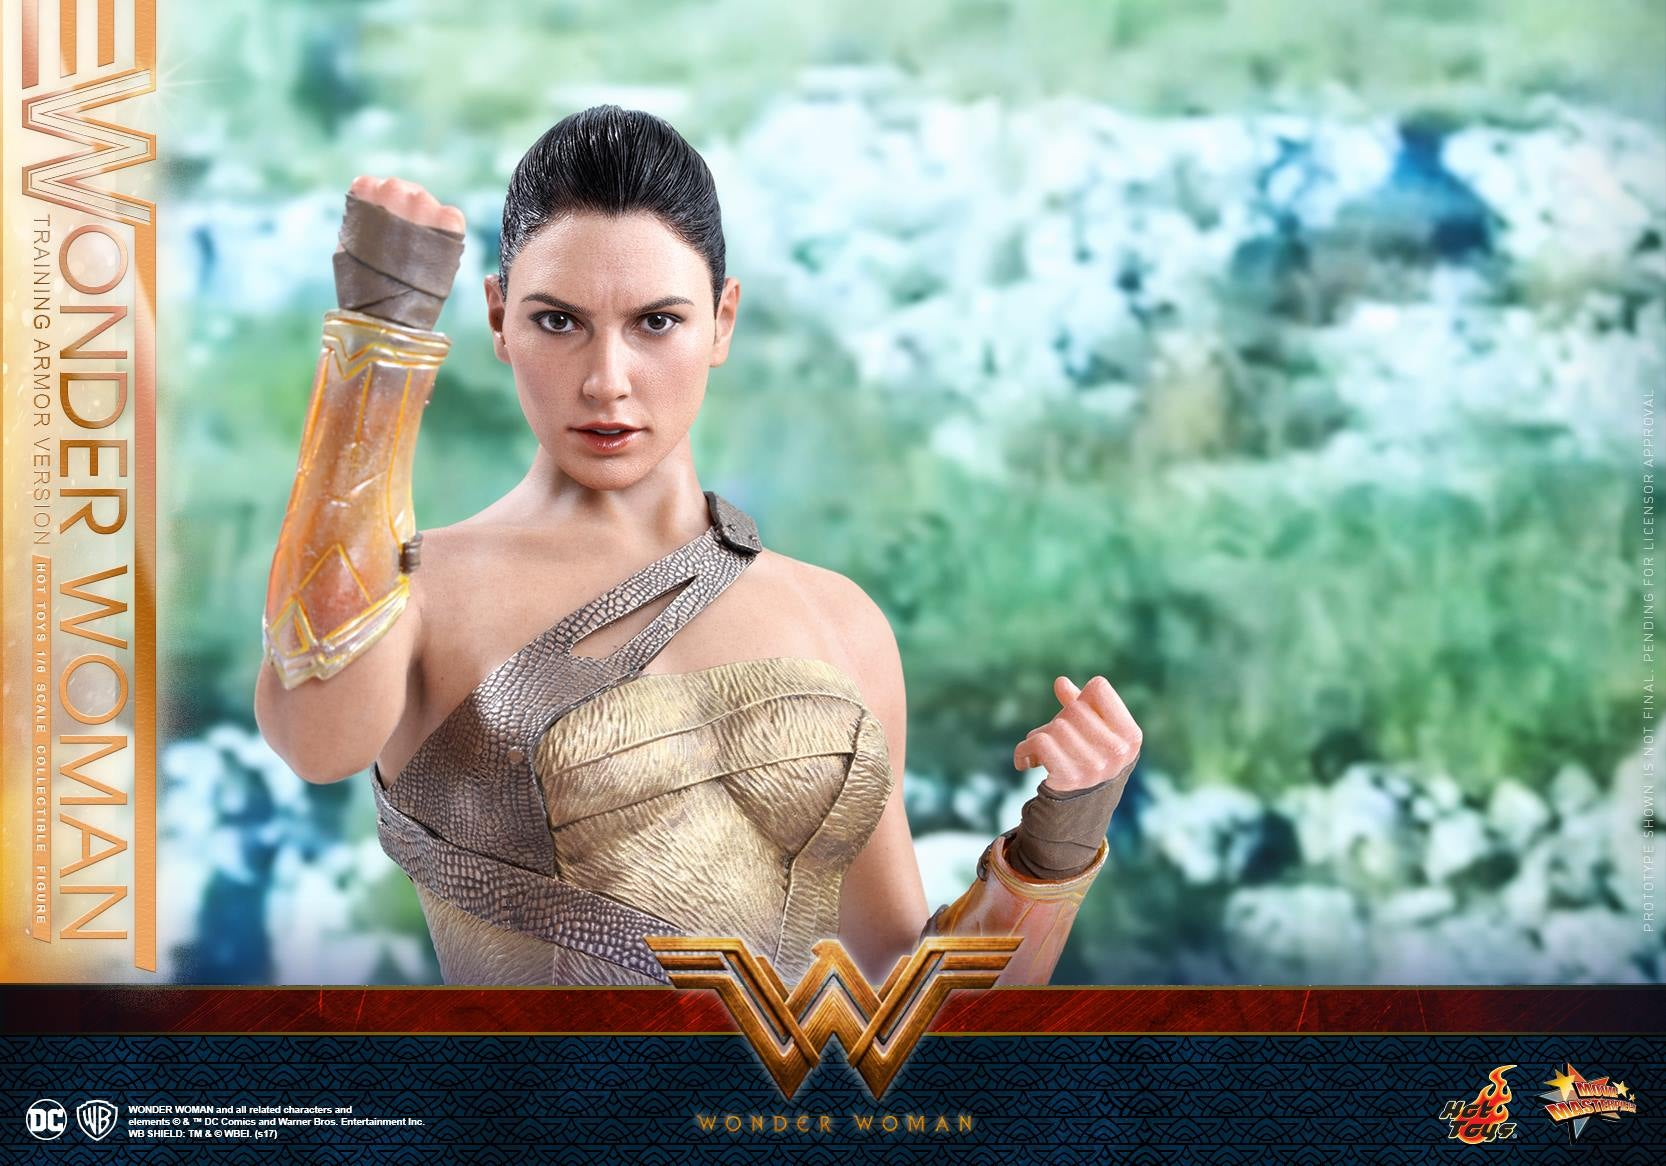 Sexist Reactions to 'Wonder Woman' That Prove She's Seriously Important